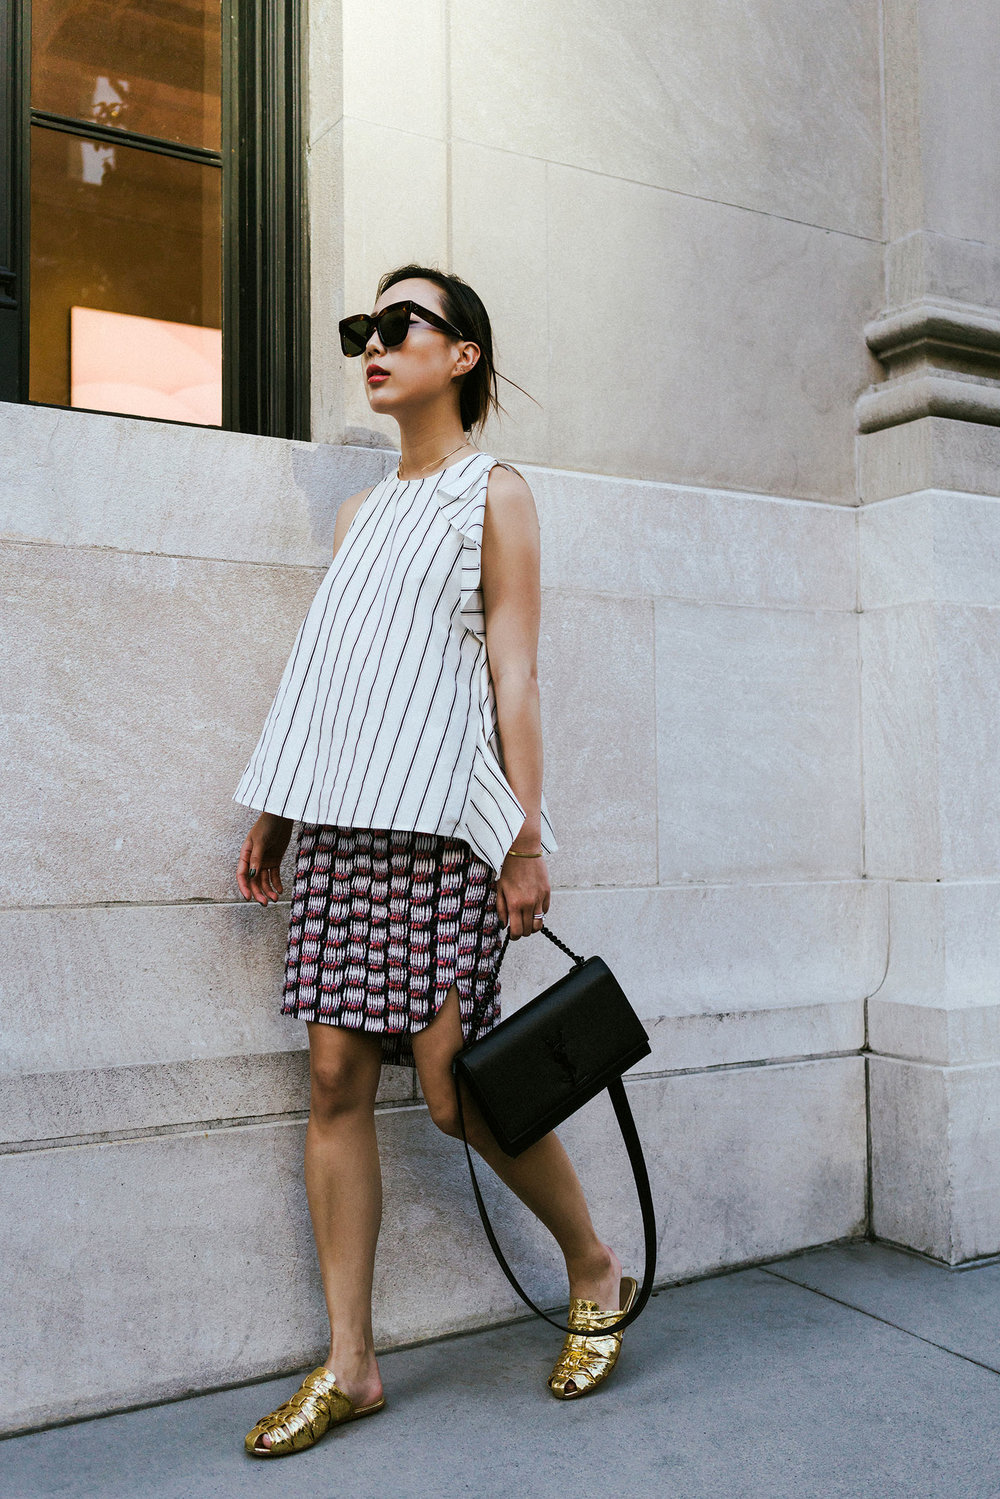 Yune Ho Top, COS Skirt,  The Row Shoes , Saint Laurent Bag, Céline Sunglasses